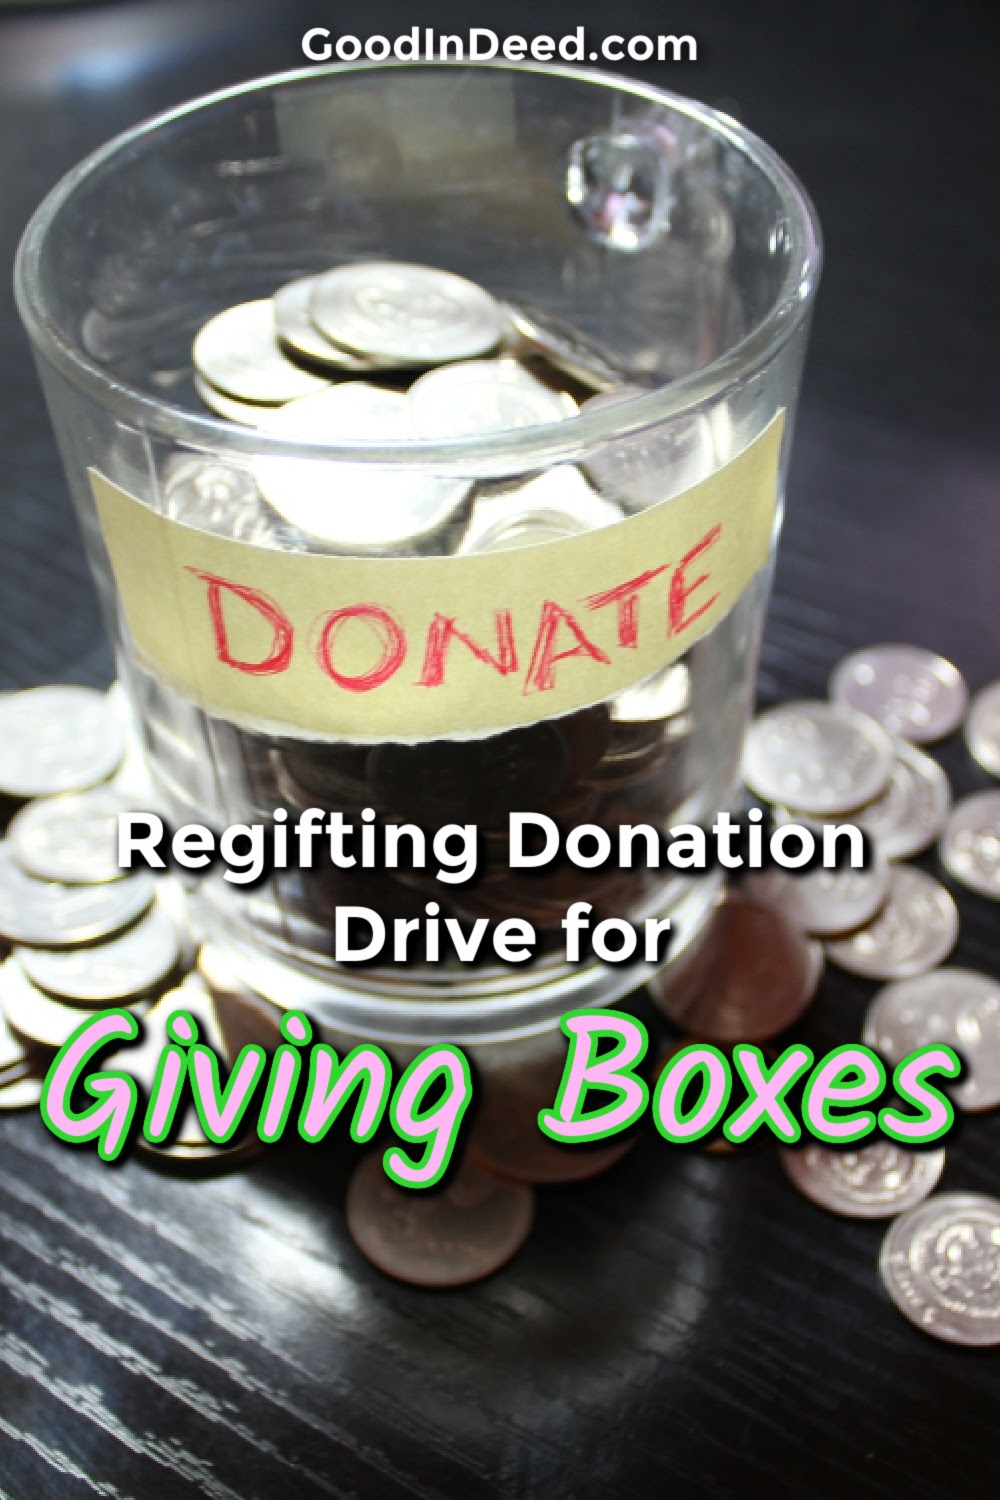 The Good In Deed community is hosting a regifting donation drive to help fill Giving Boxes and make a difference when the world needs it most.